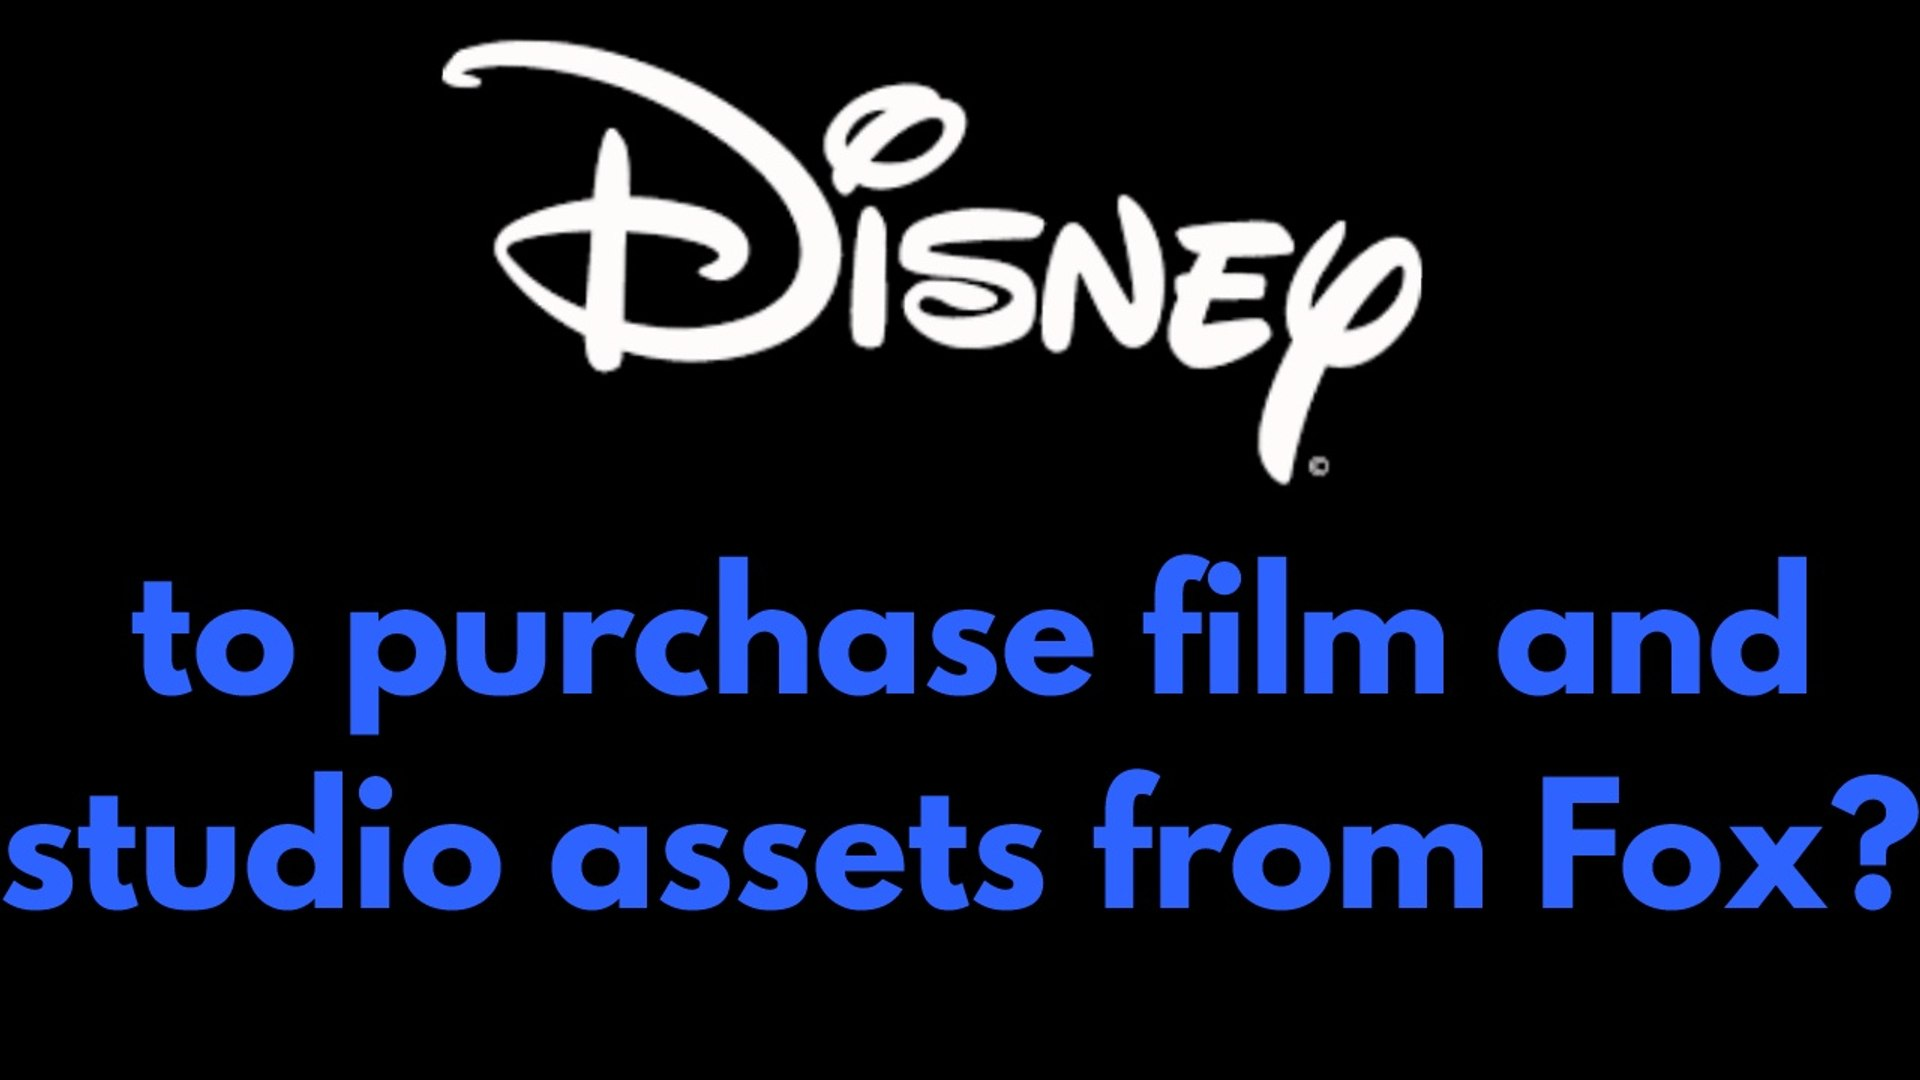 Disney to purchase film and studio assets from Fox?